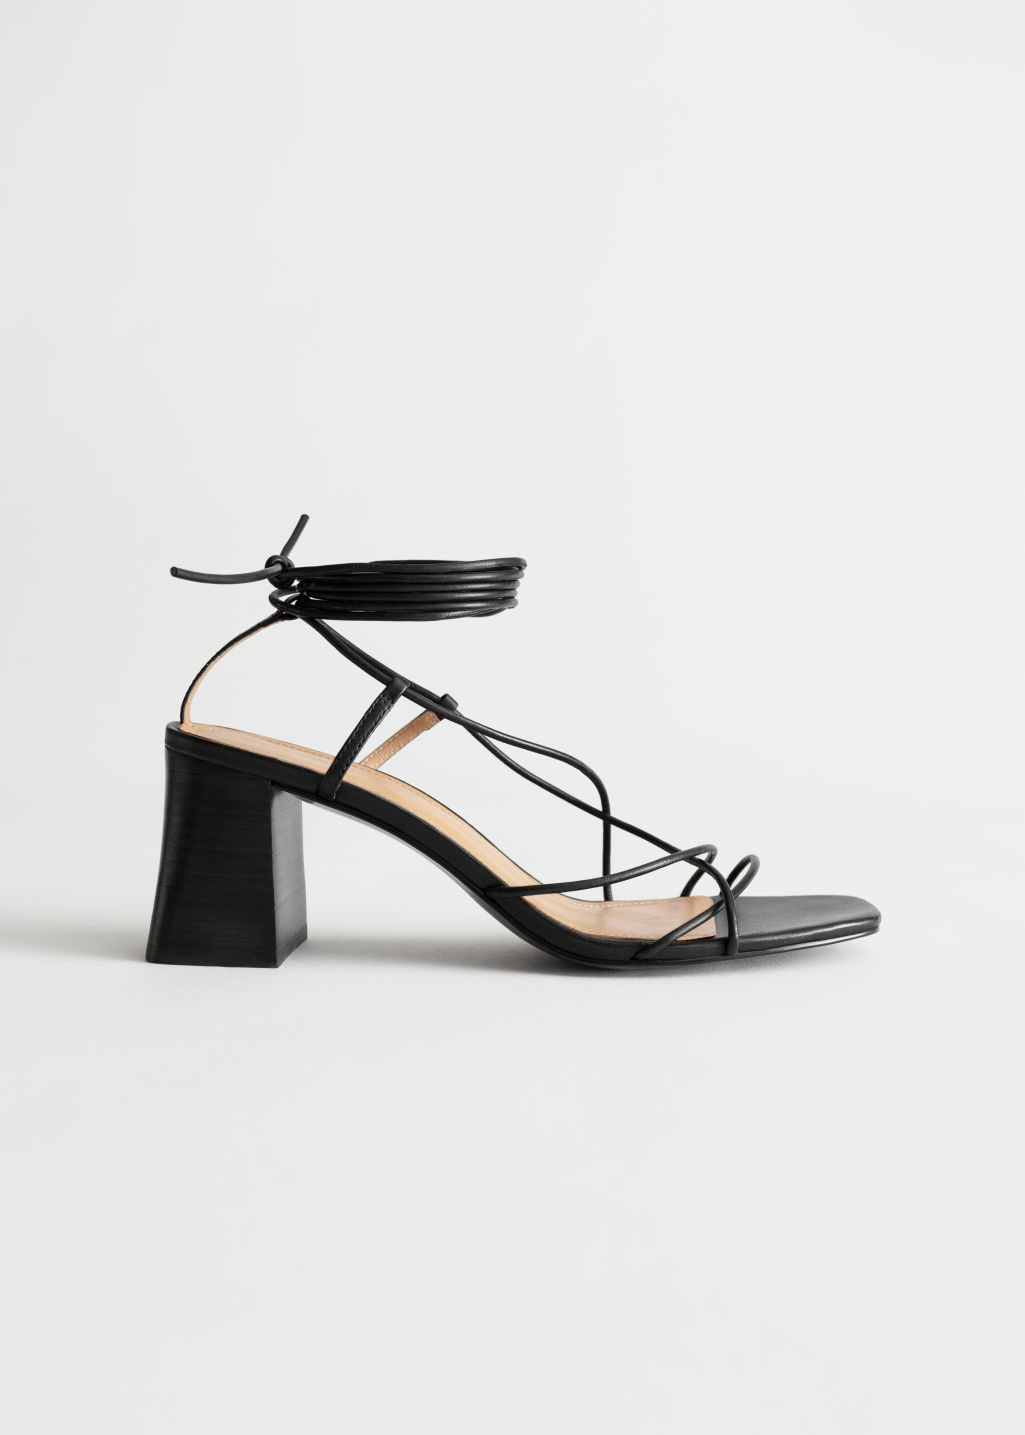 StillLife Left Image of Stories Leather Strappy Lace Up Heeled Sandals in Black